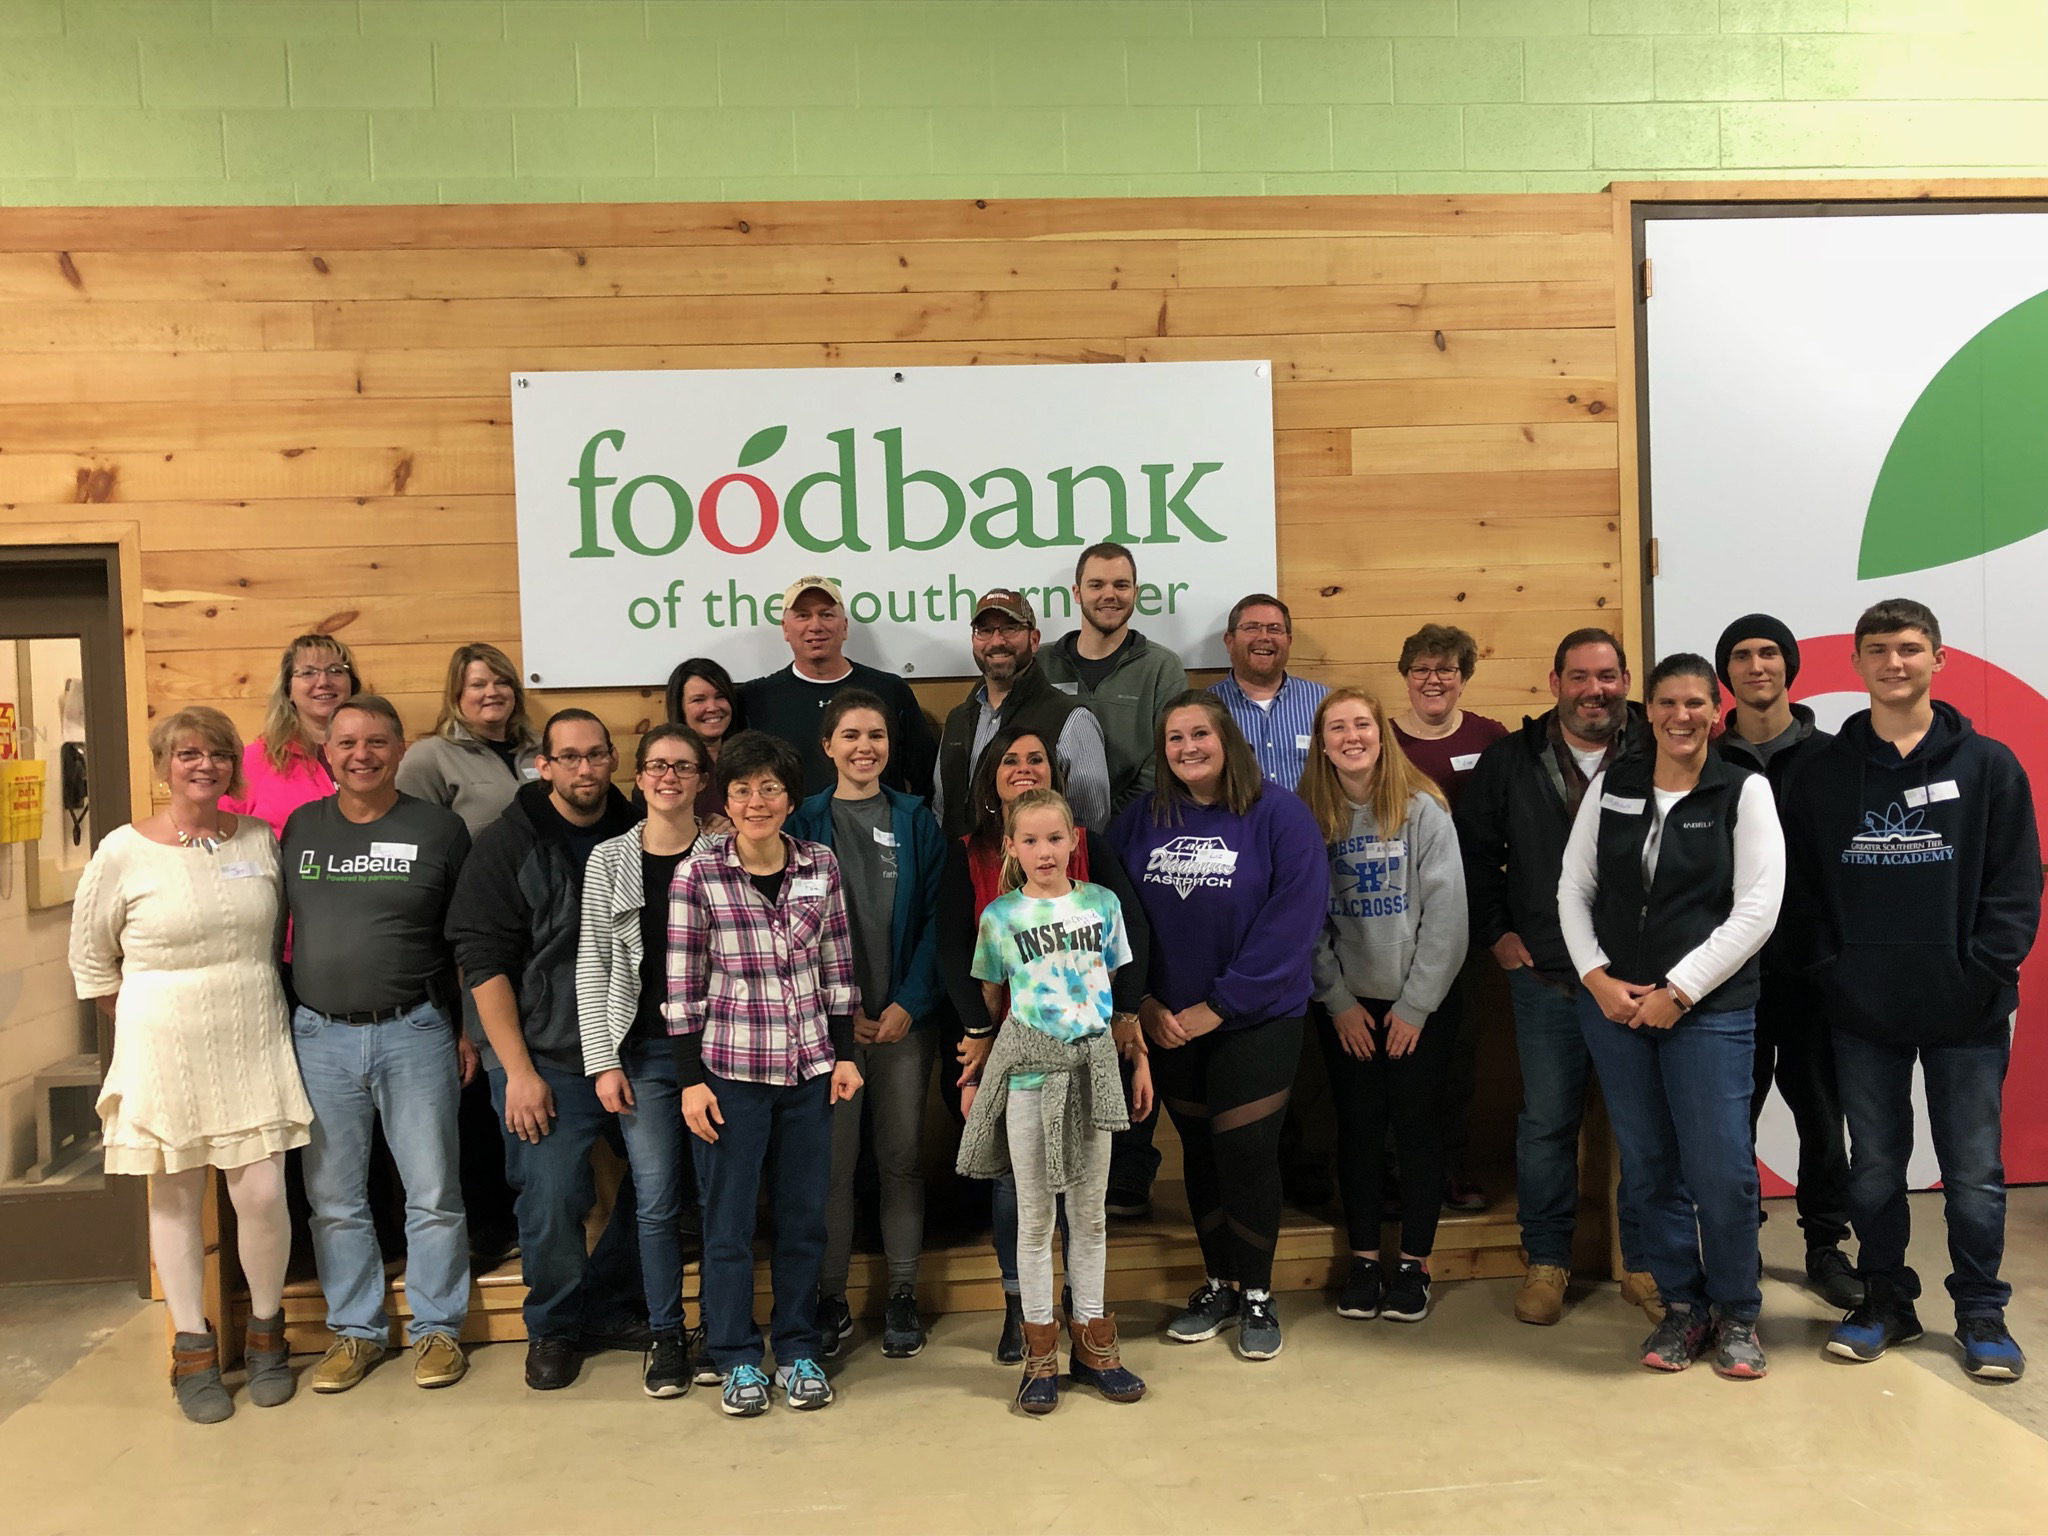 Foodbank of the Southern Tier